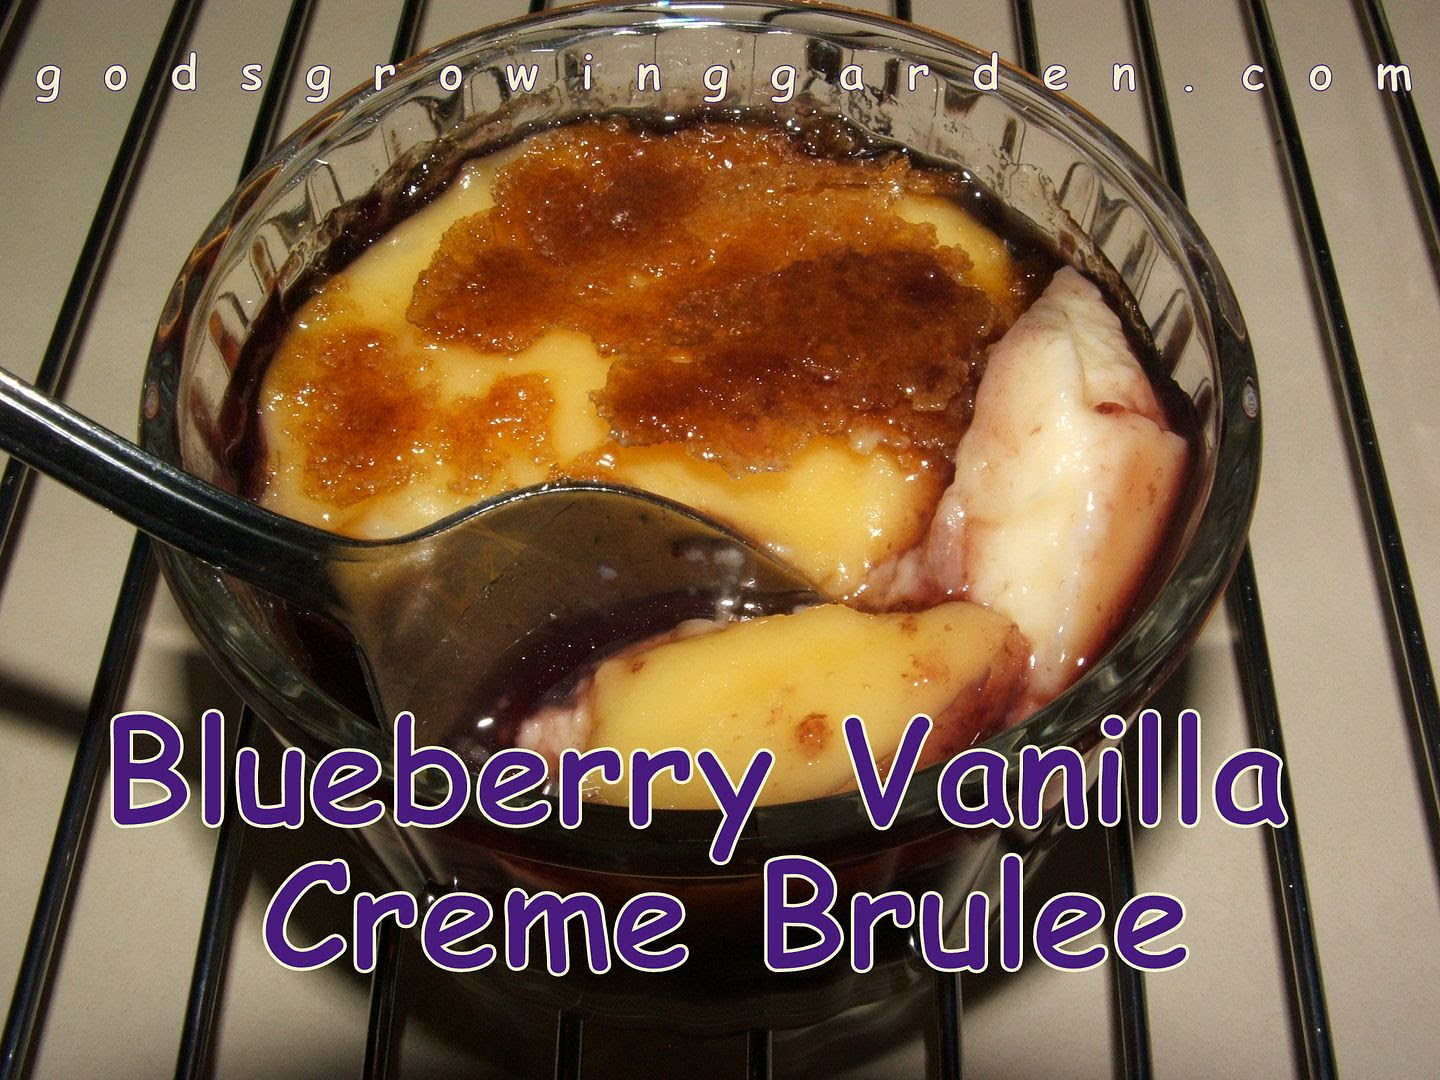 Blueberry Vanilla Creme Brulee by Angie Ouellette-Tower for godsgrowinggarden.com photo 014_zps2b52e365.jpg